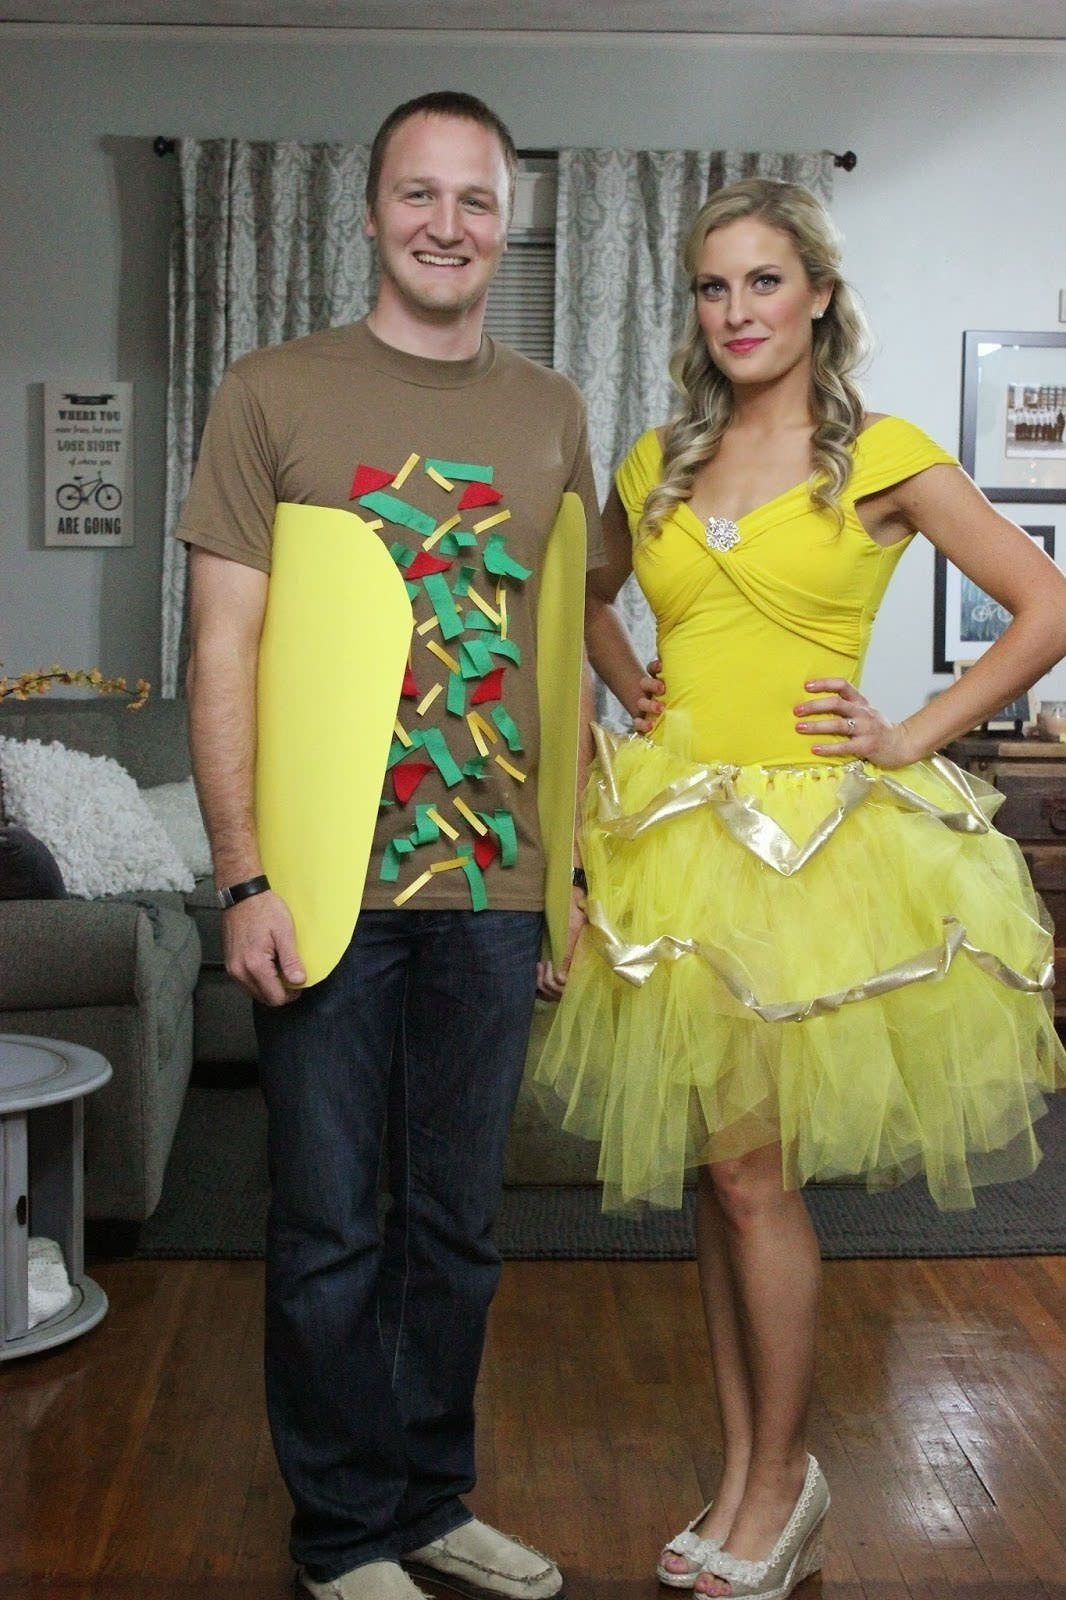 10 Stylish Unique Couples Halloween Costume Ideas 15 diy couples and family halloween costumes diy halloween 2020